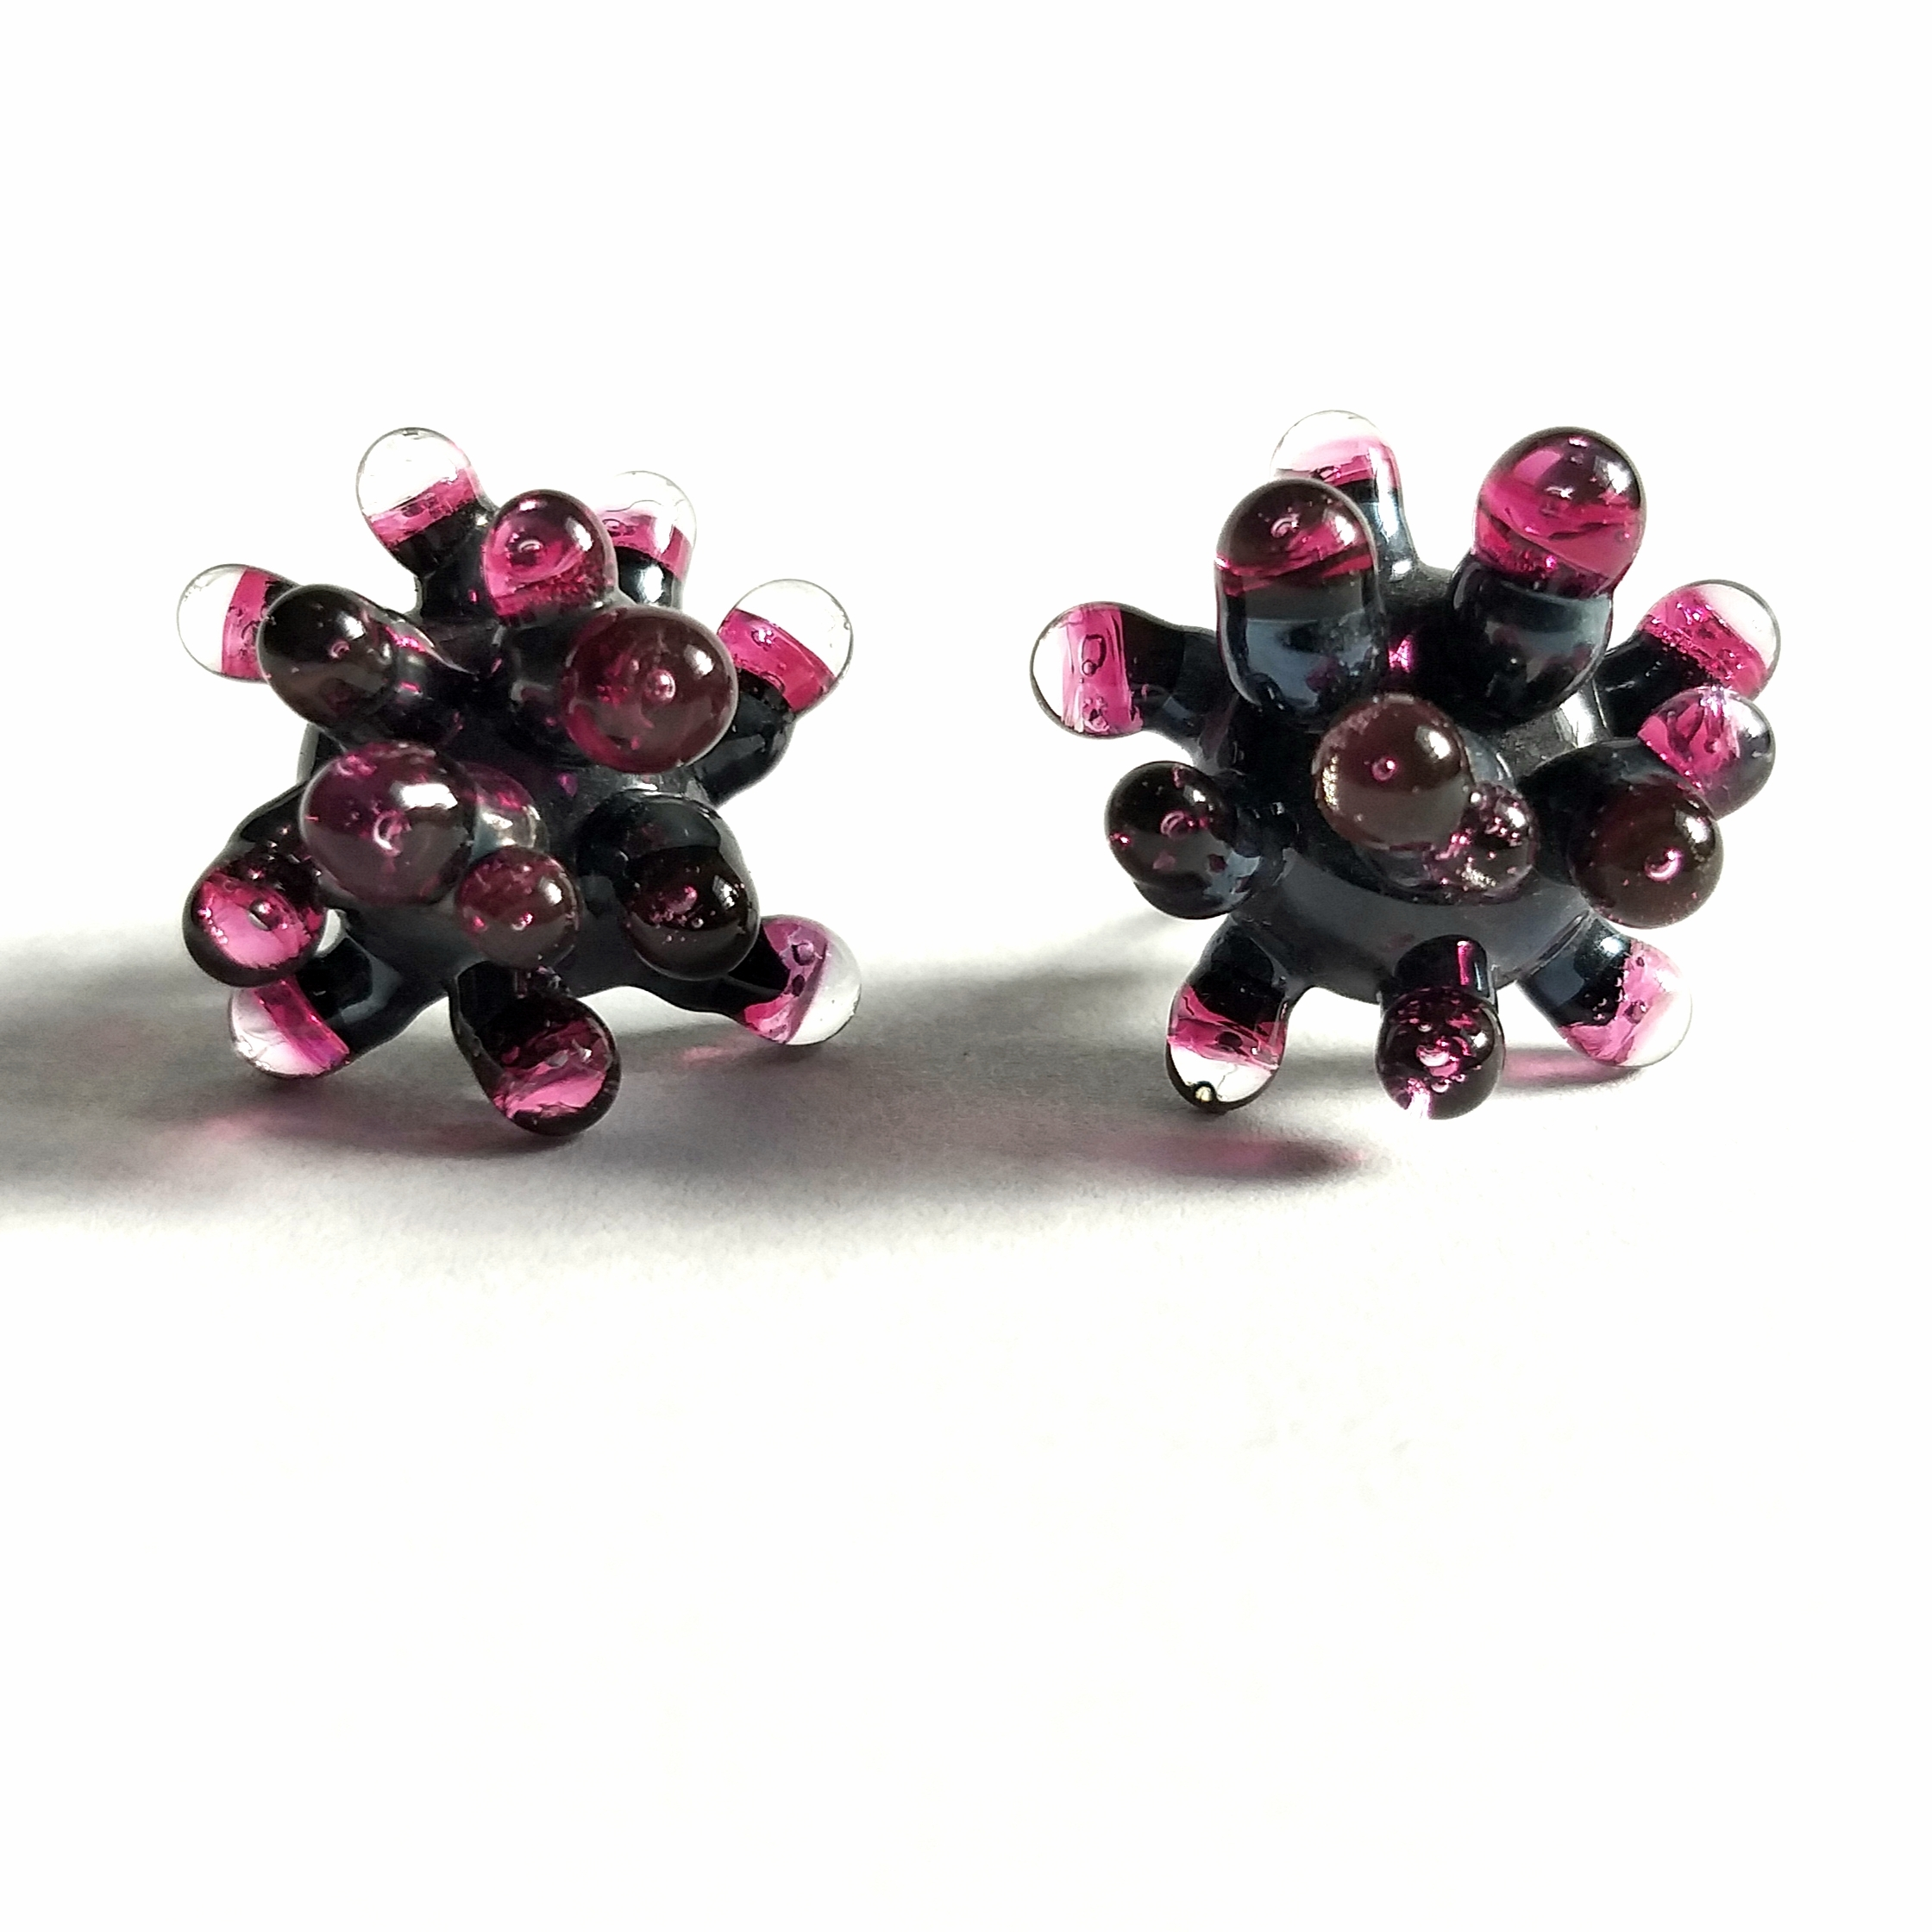 Grey and Fuchsia Anemone Earrings by Cecilia Lopez-Bravo